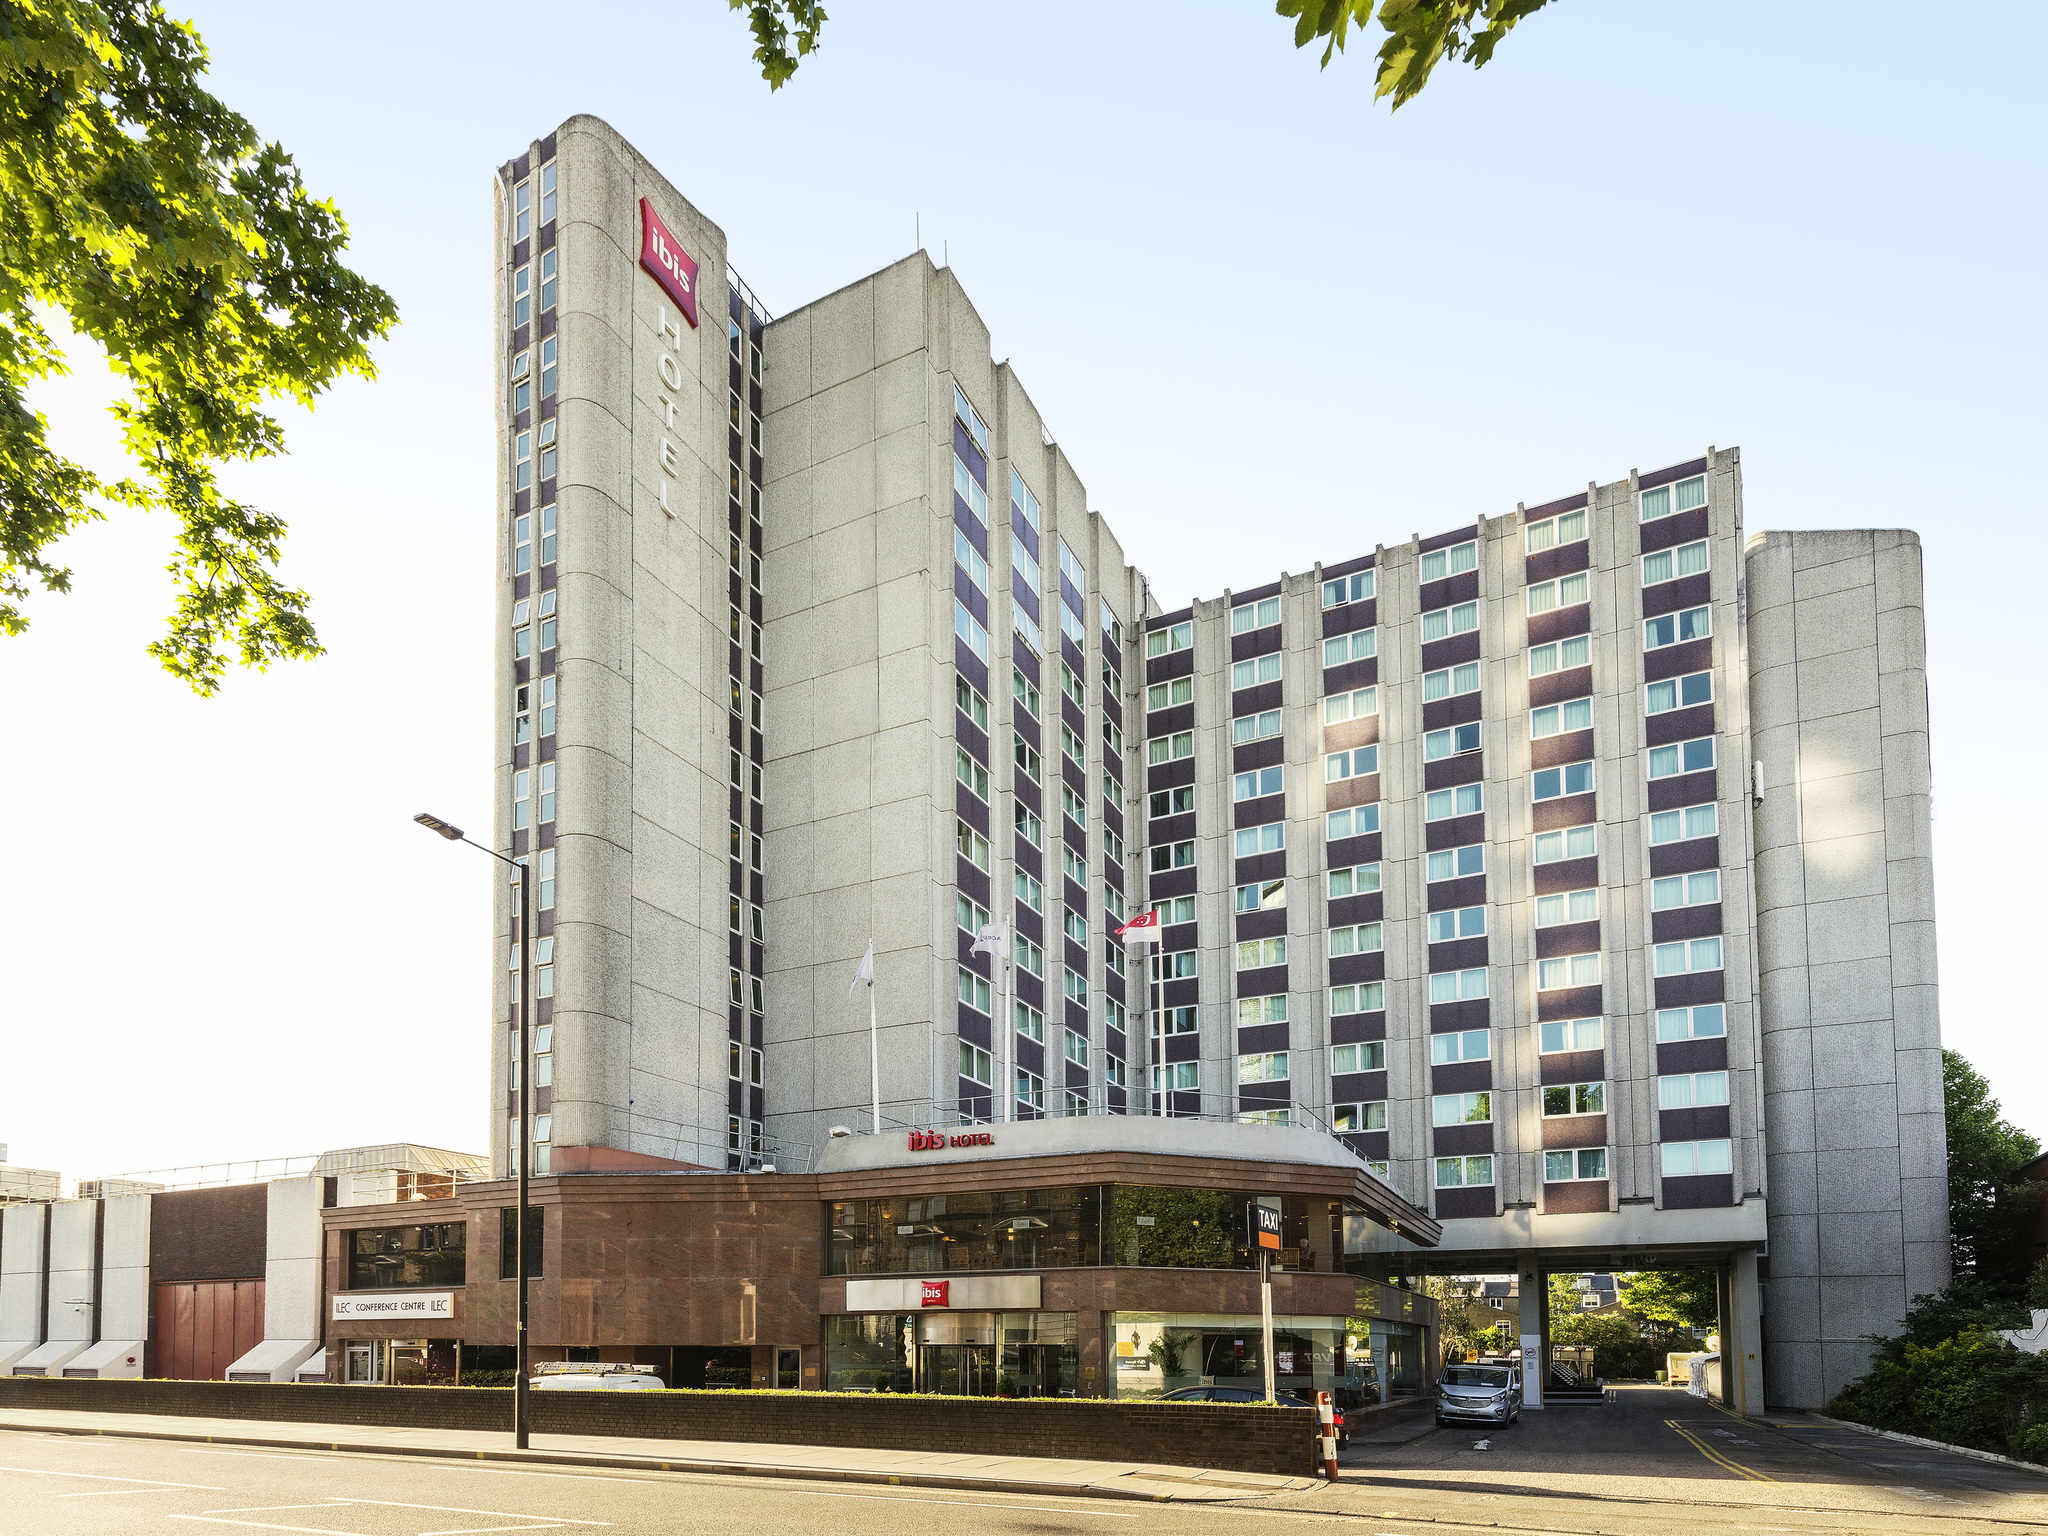 Hotel Ibis London Earls Court